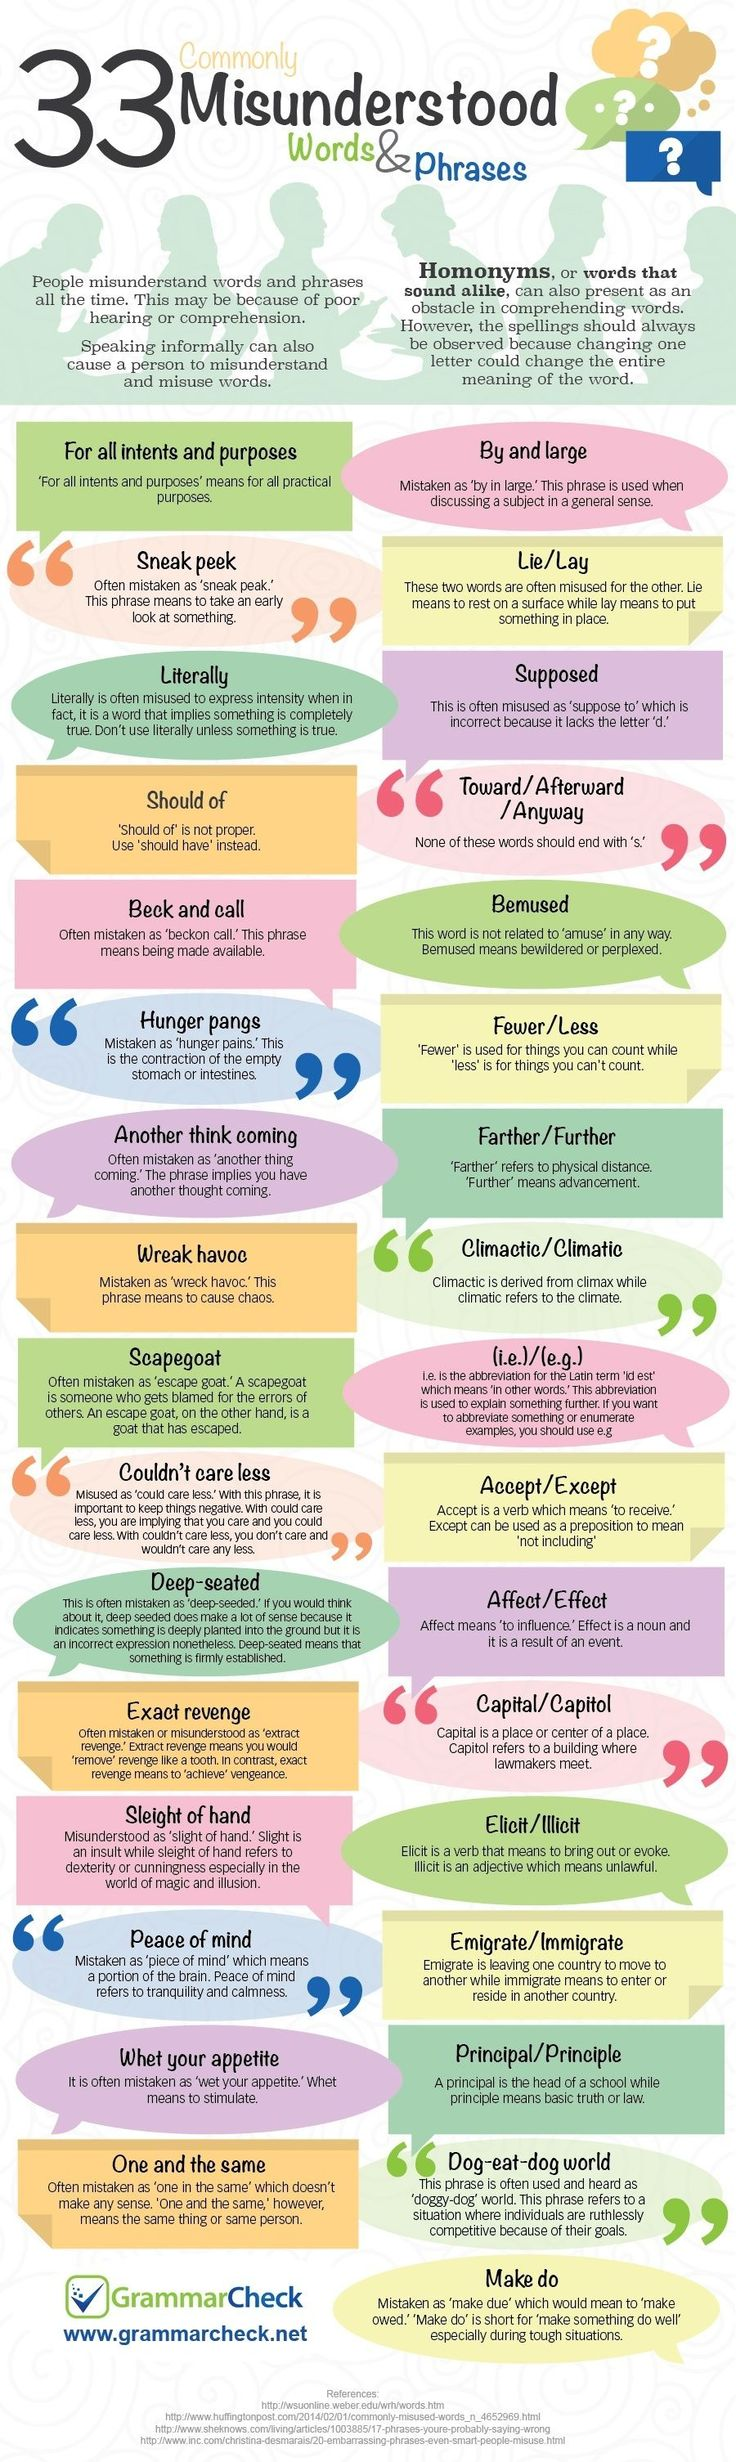 best grammar online ideas english grammar check  33 common words phrases you might be saying wrong